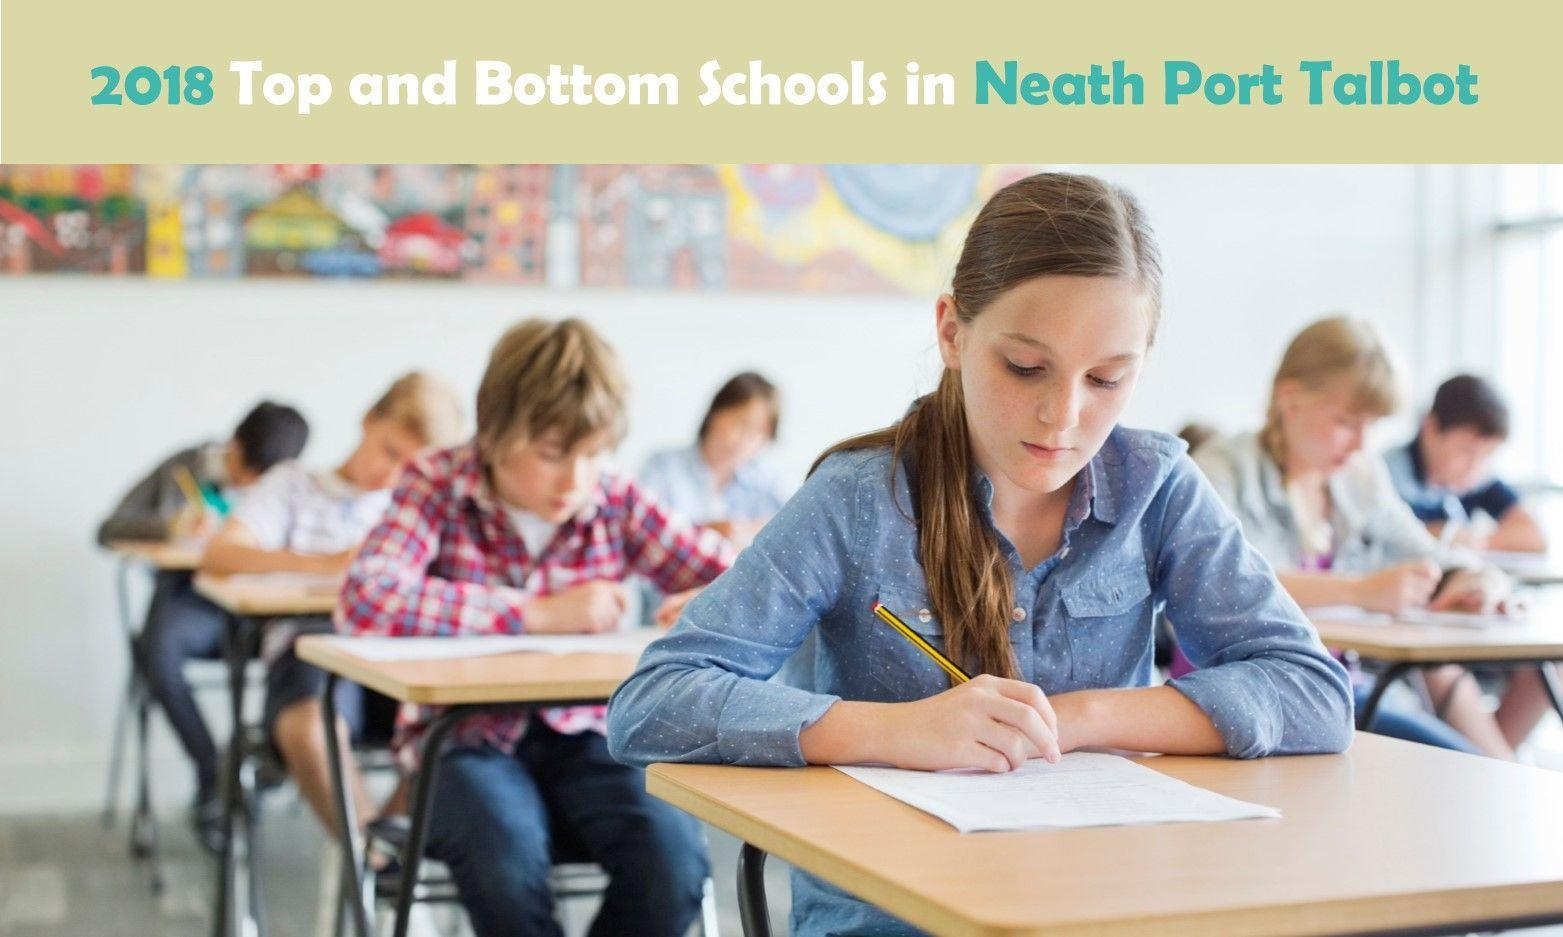 2018 Top and Bottom Schools in Neath Port Talbot